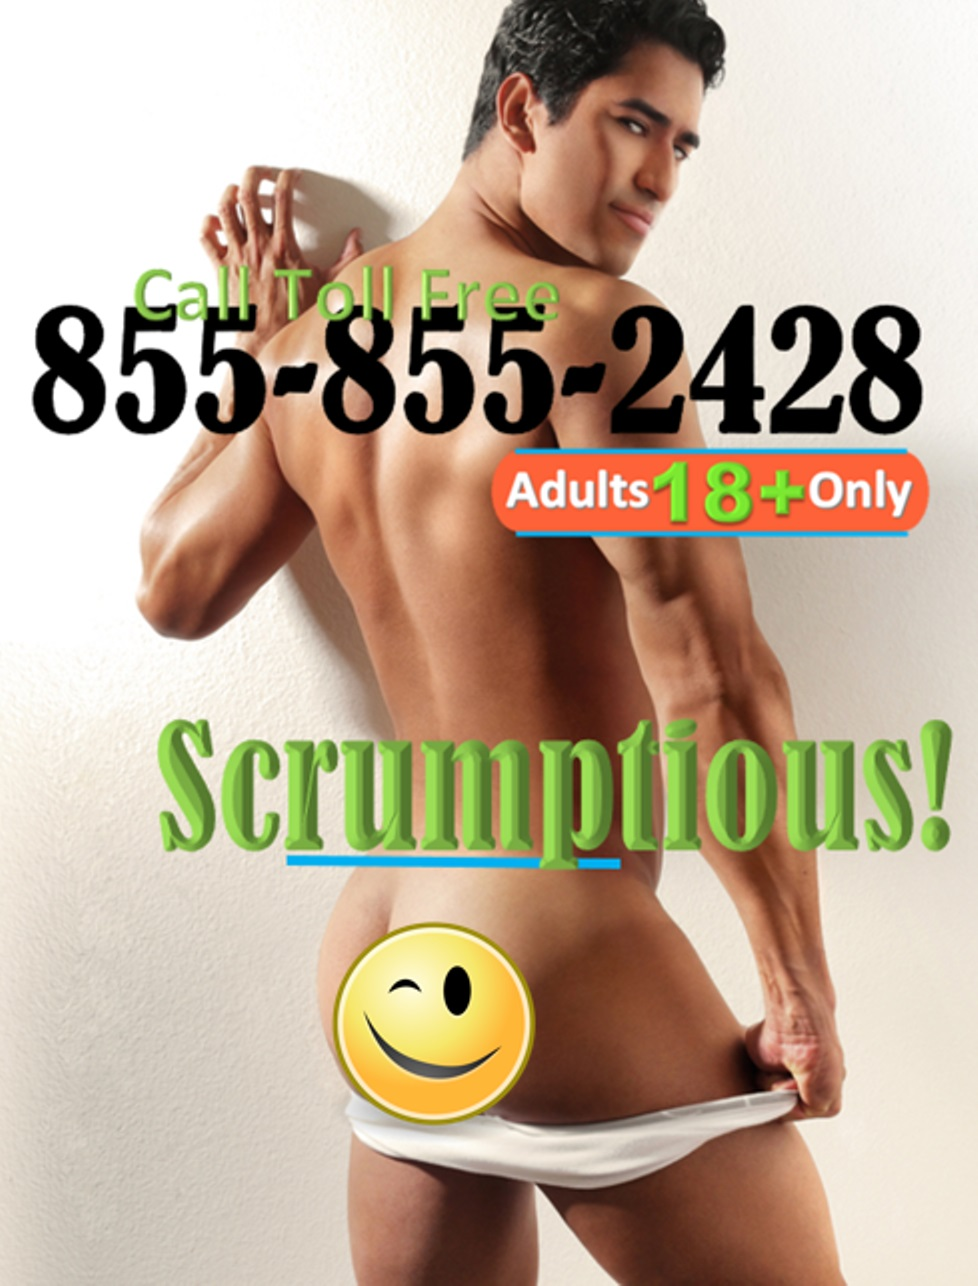 Free Gay Phone Chat Numbers